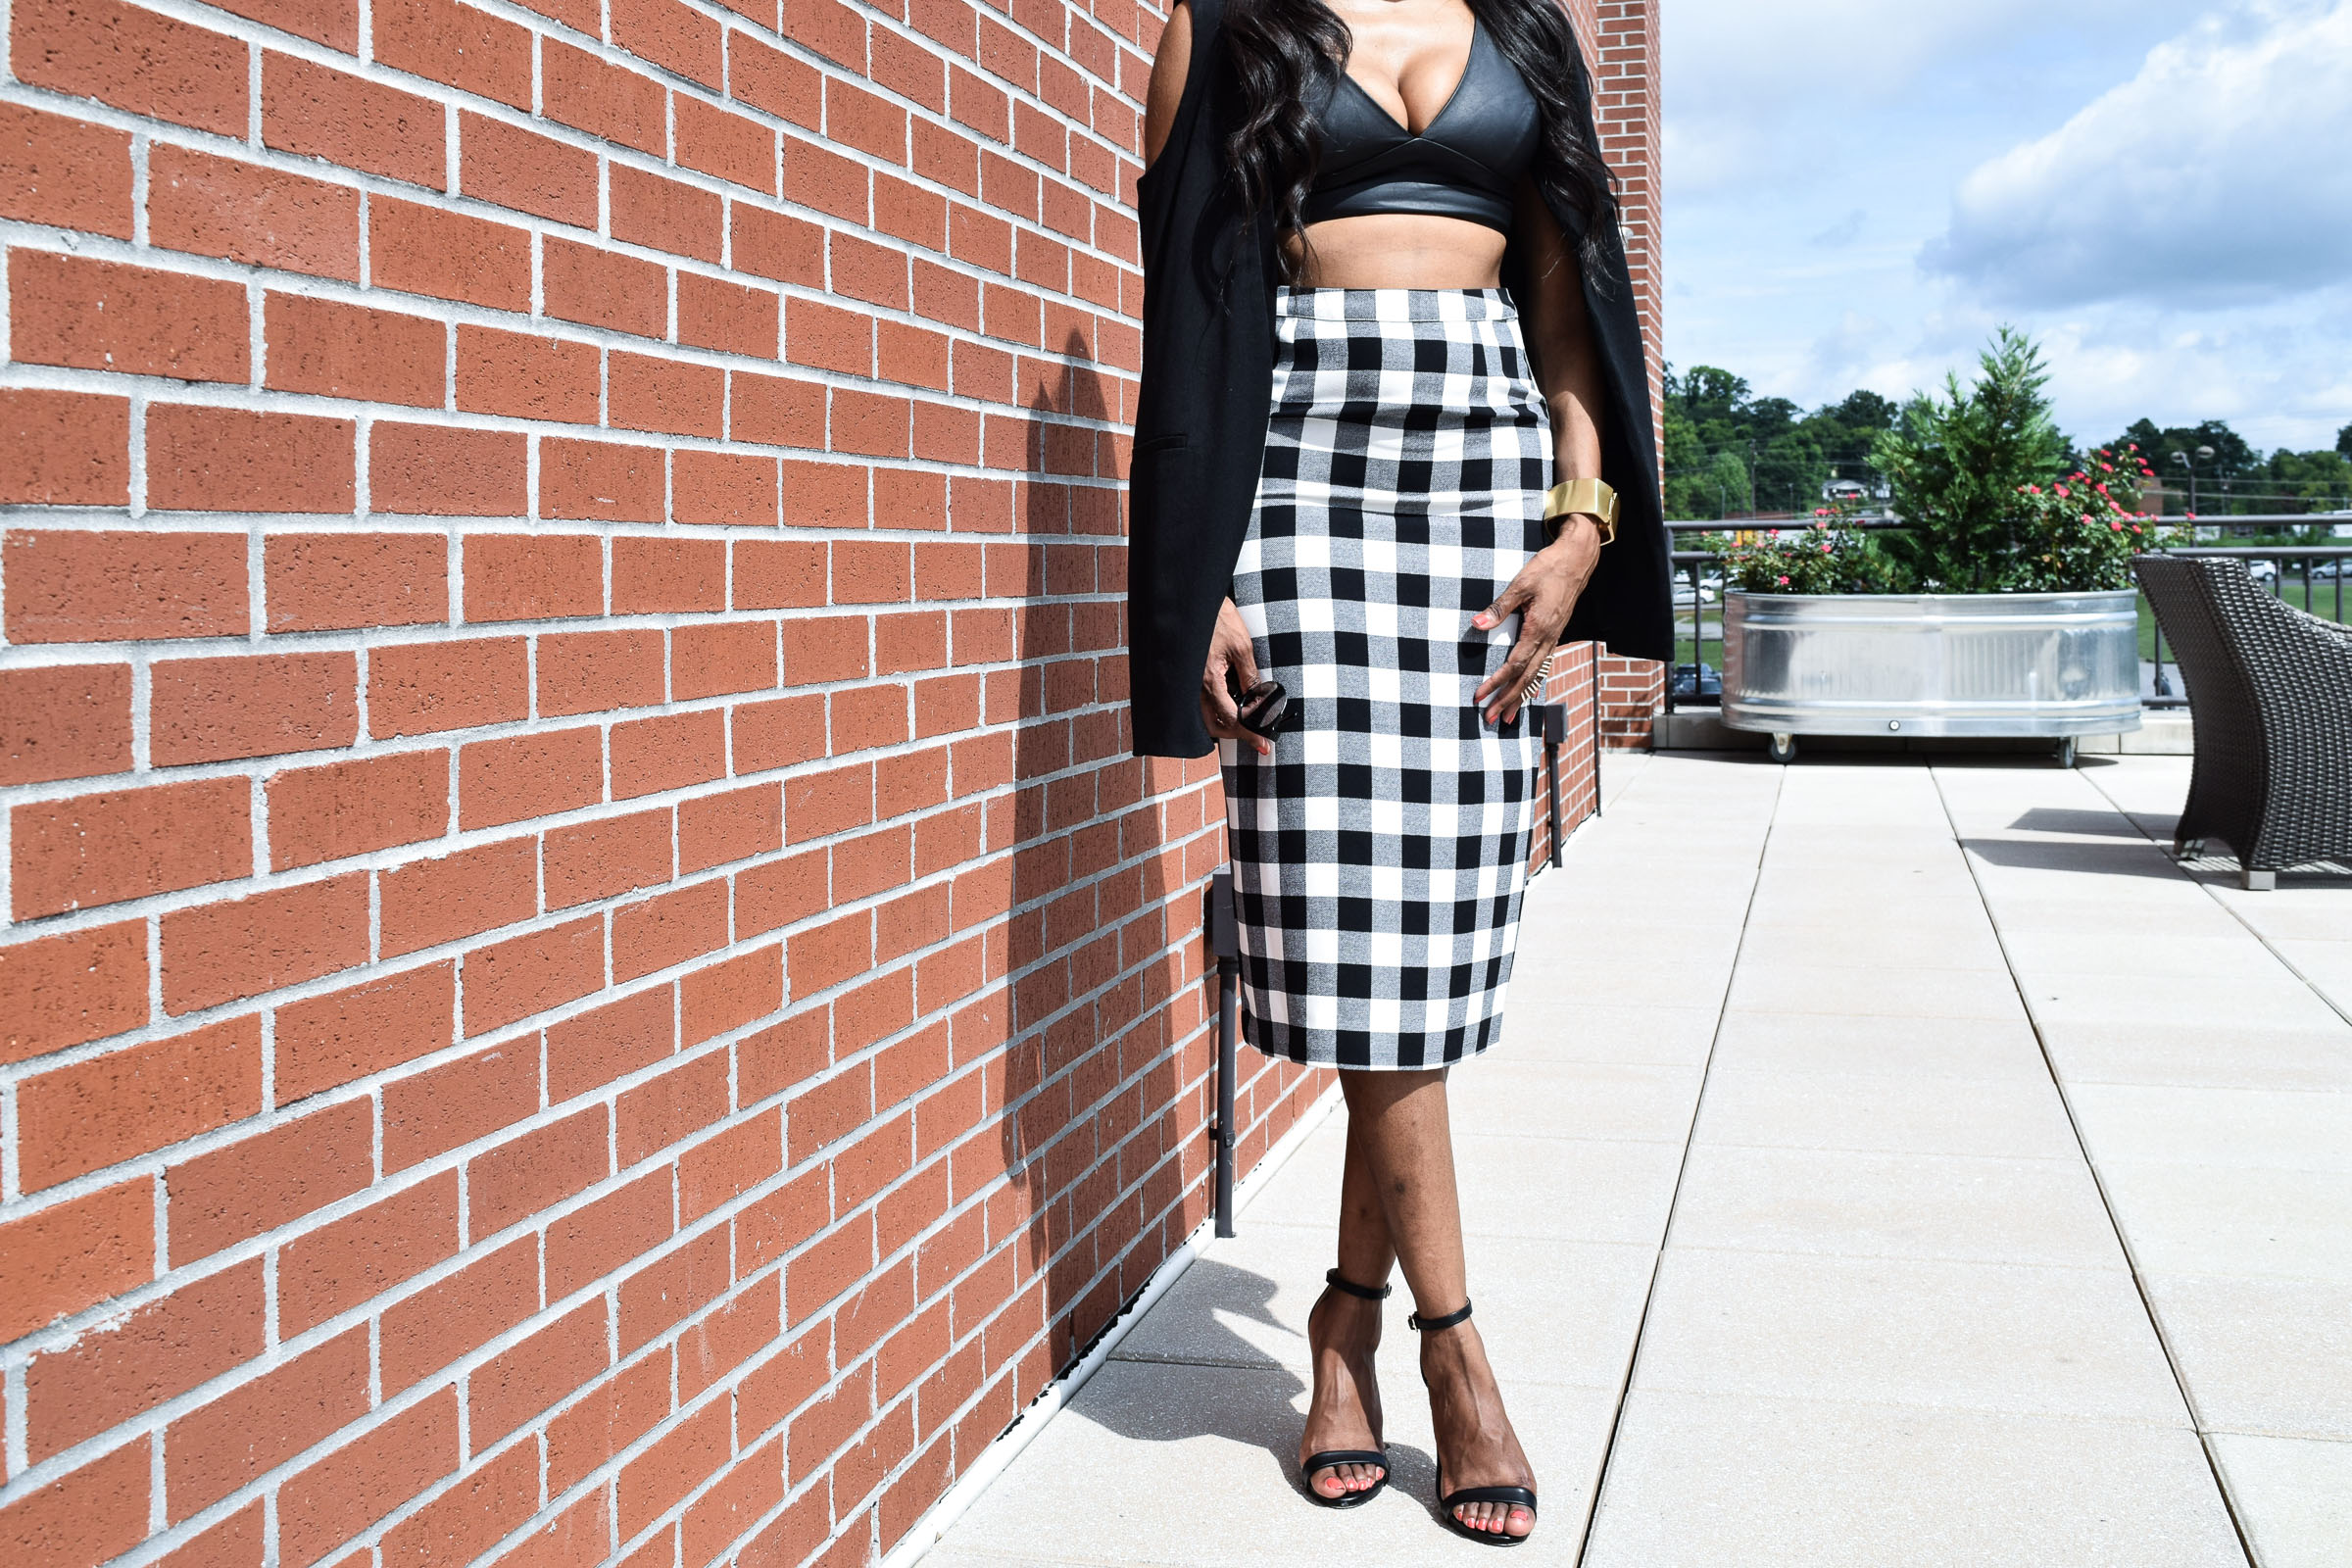 Style-Files-WhoWhatWear-Target-collection-black-white-gingham-pencil-skirt-forever-21-black-leather-bralette-top-justfab-catherina-black-ankle-strap-sandals-Target-Mossimo-vest-who-to-wear-gingham-OohLaLaBlog-15